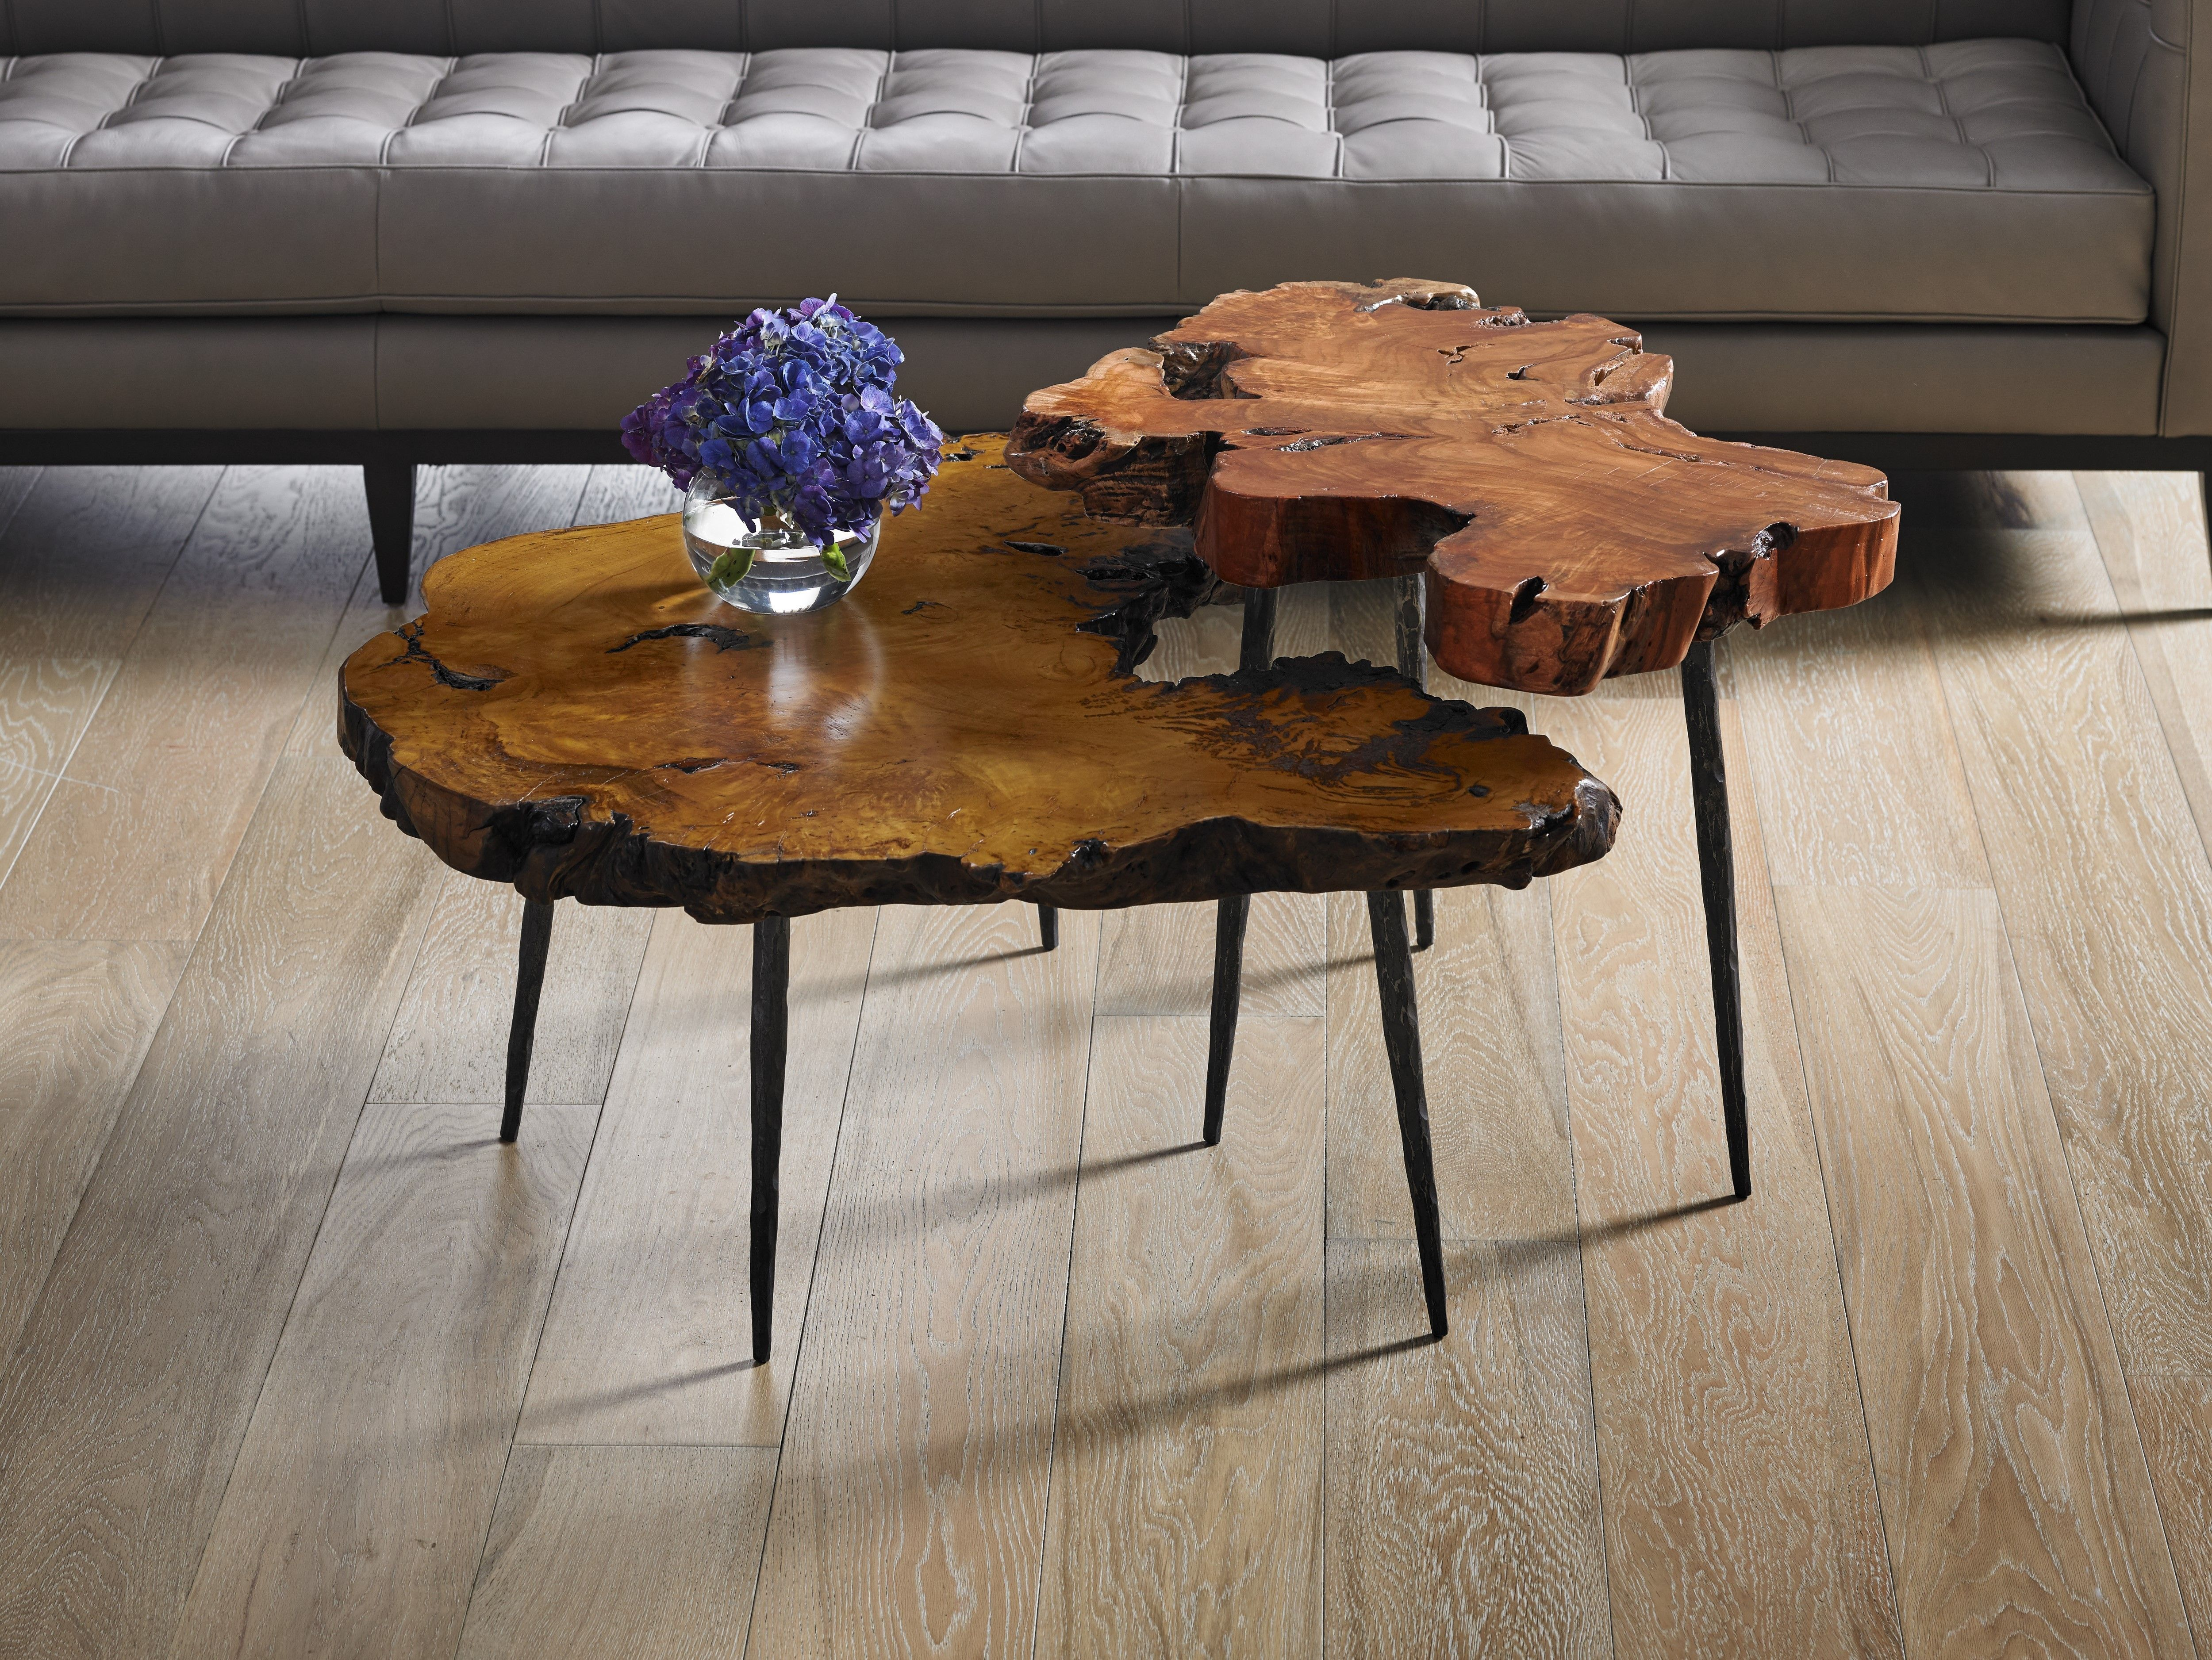 Burled Wood Tables Made From Slices Of Real Burl And Mounted At Different  Heights. Works Great Clustered Together In Different Heights.